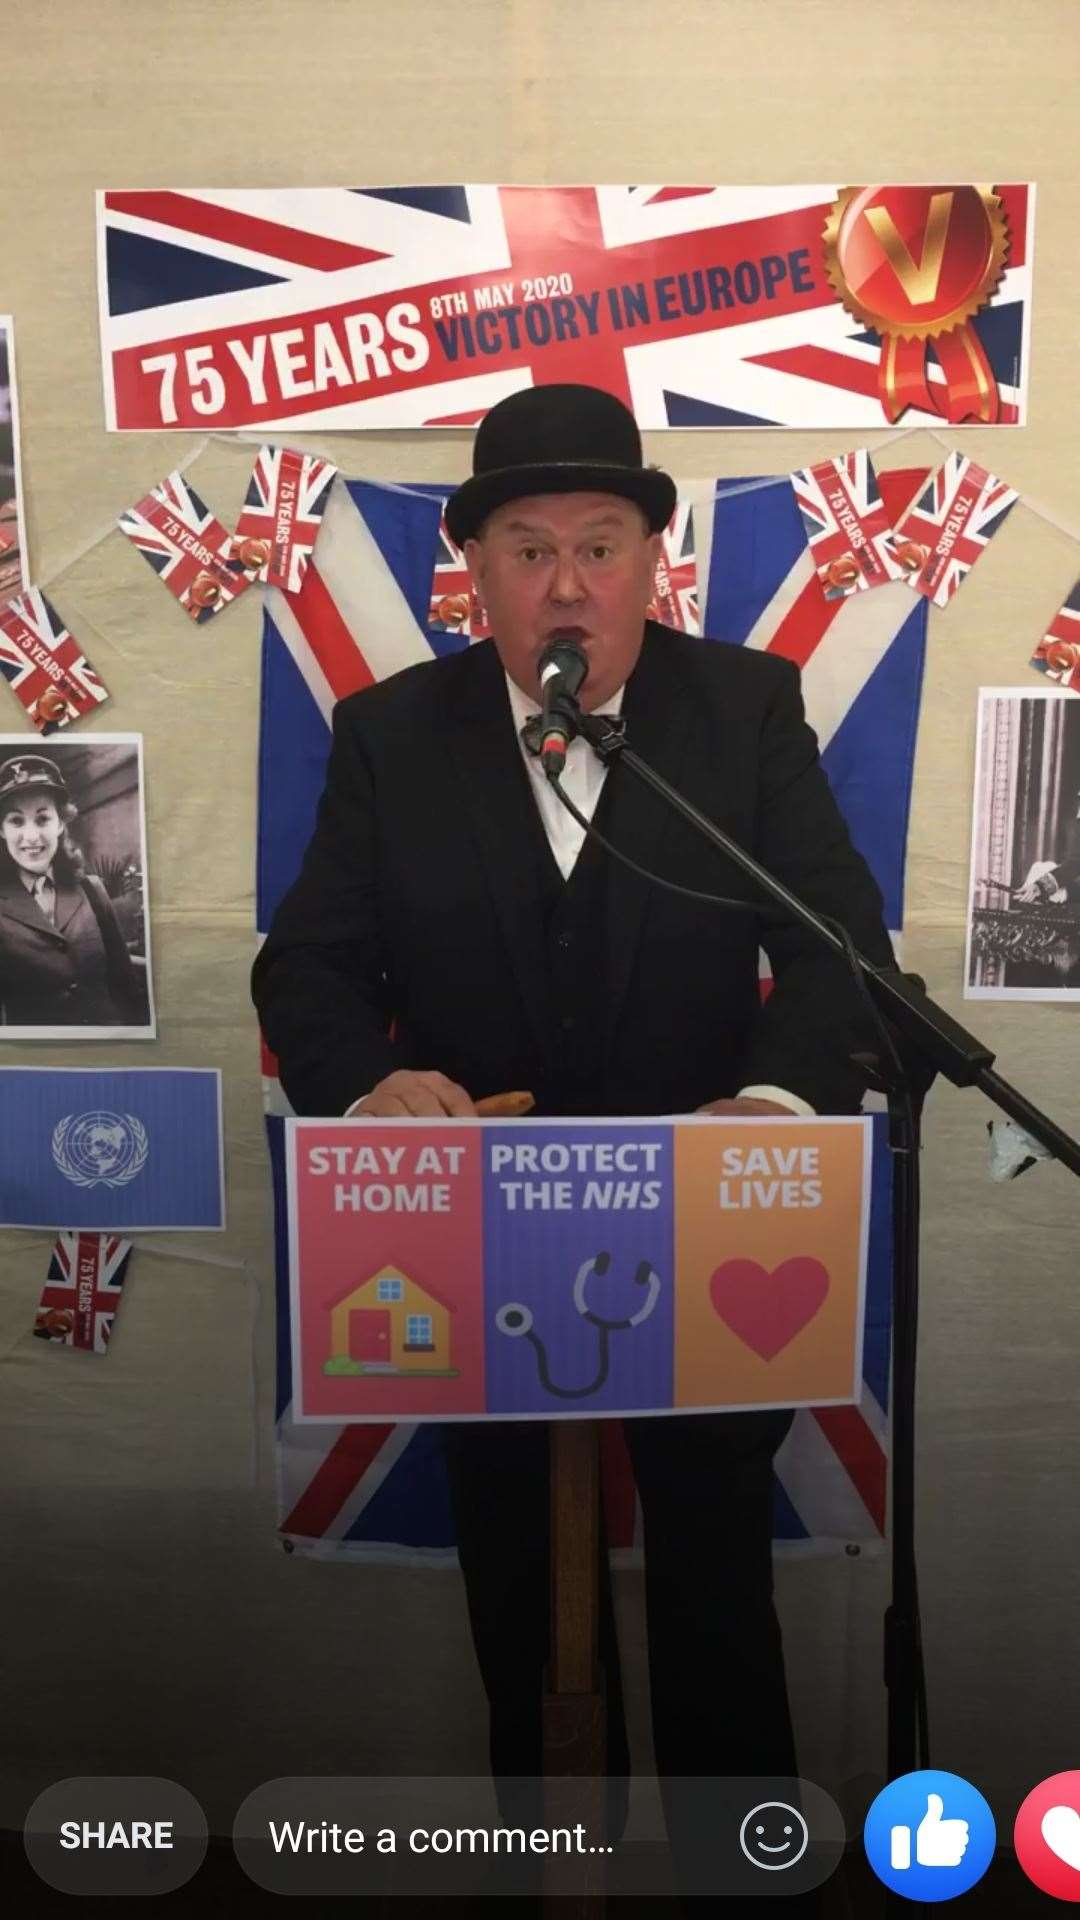 Will Gunn, dressed as Winston Churchill, addresses Orston on video as part of the village's VE Day celebrations. Credit: Orston Village on Facebook (36982479)